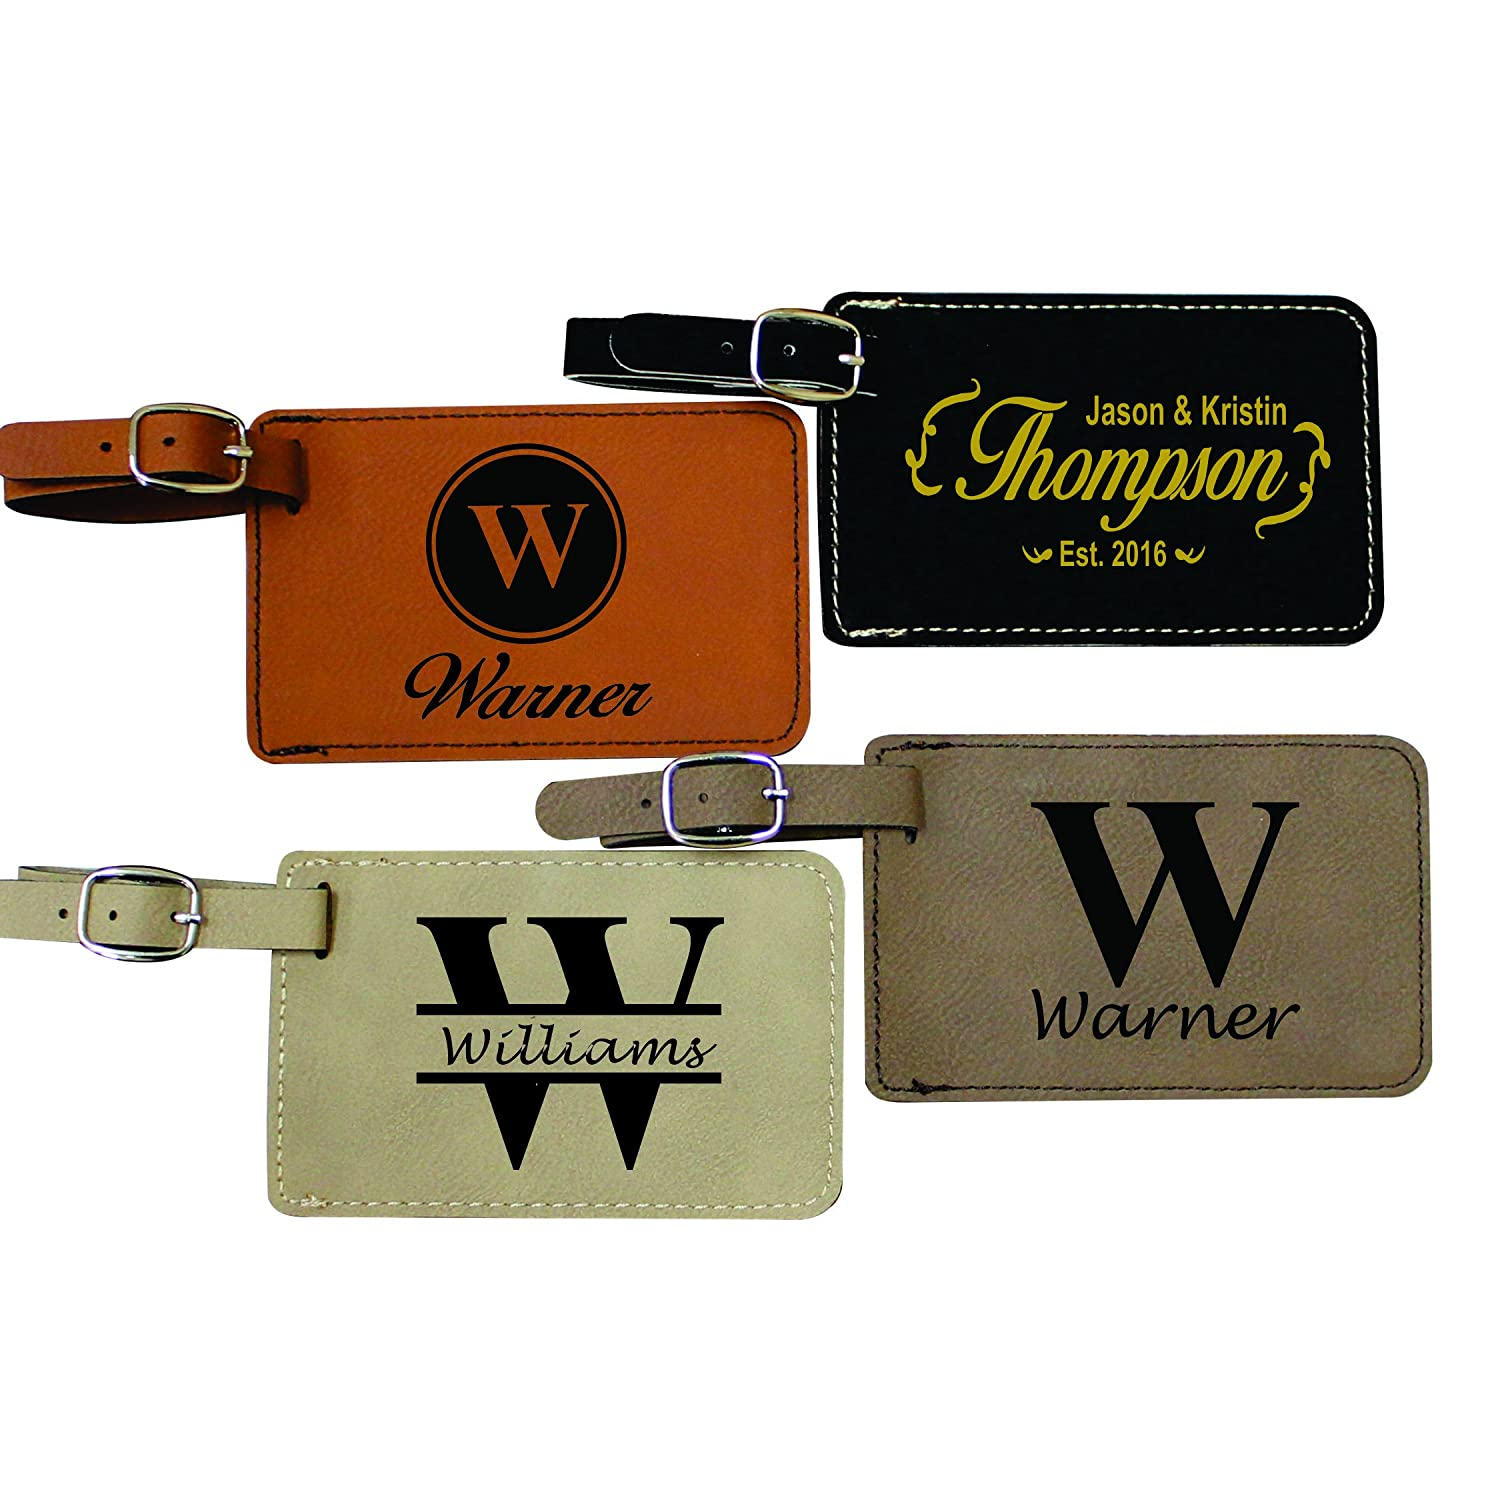 Amazon.com: Personalized Luggage Tags - Engraved Monogrammed ...